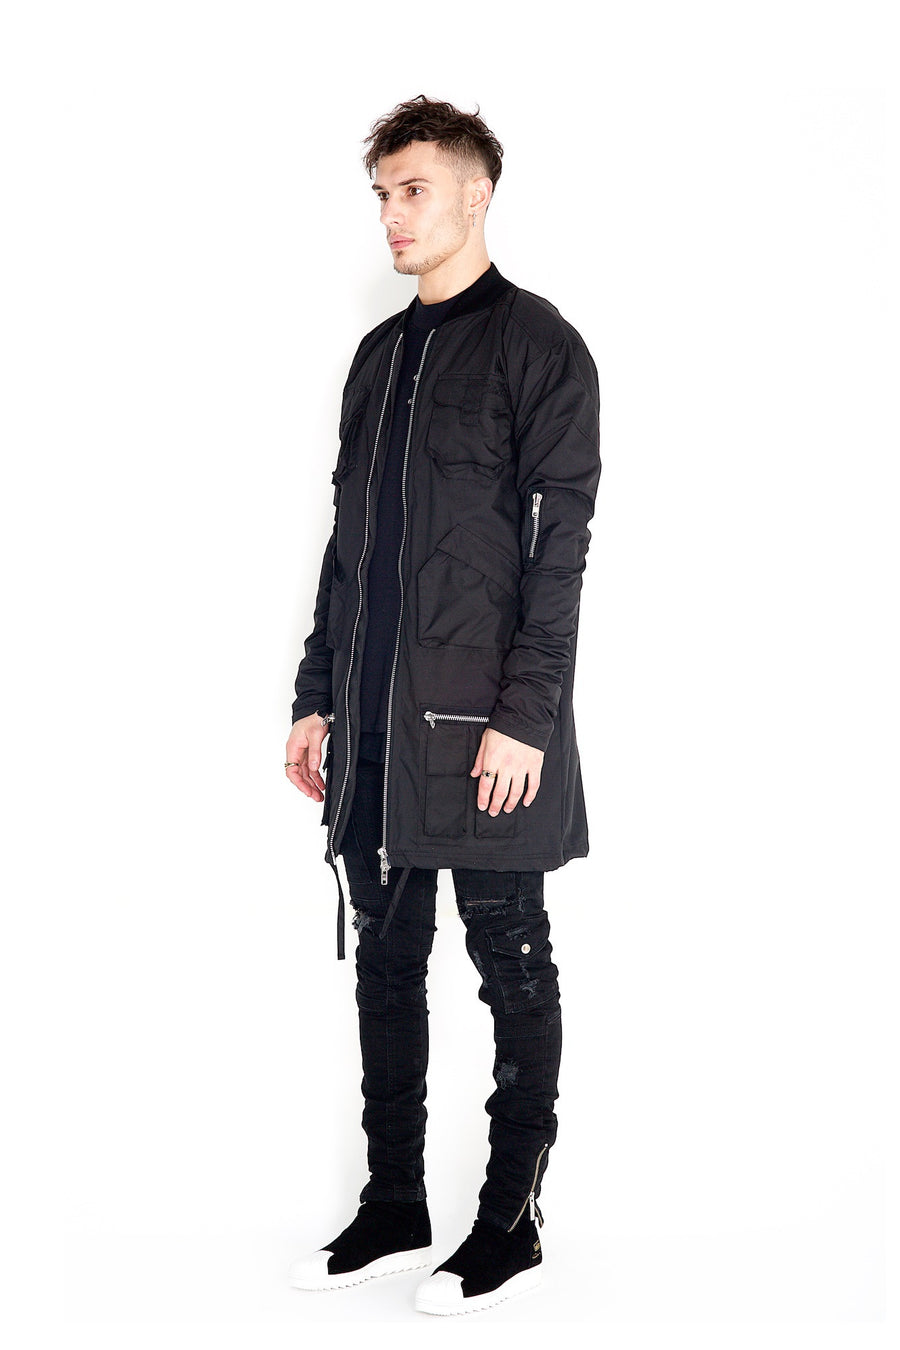 Valka Long Jacket Black